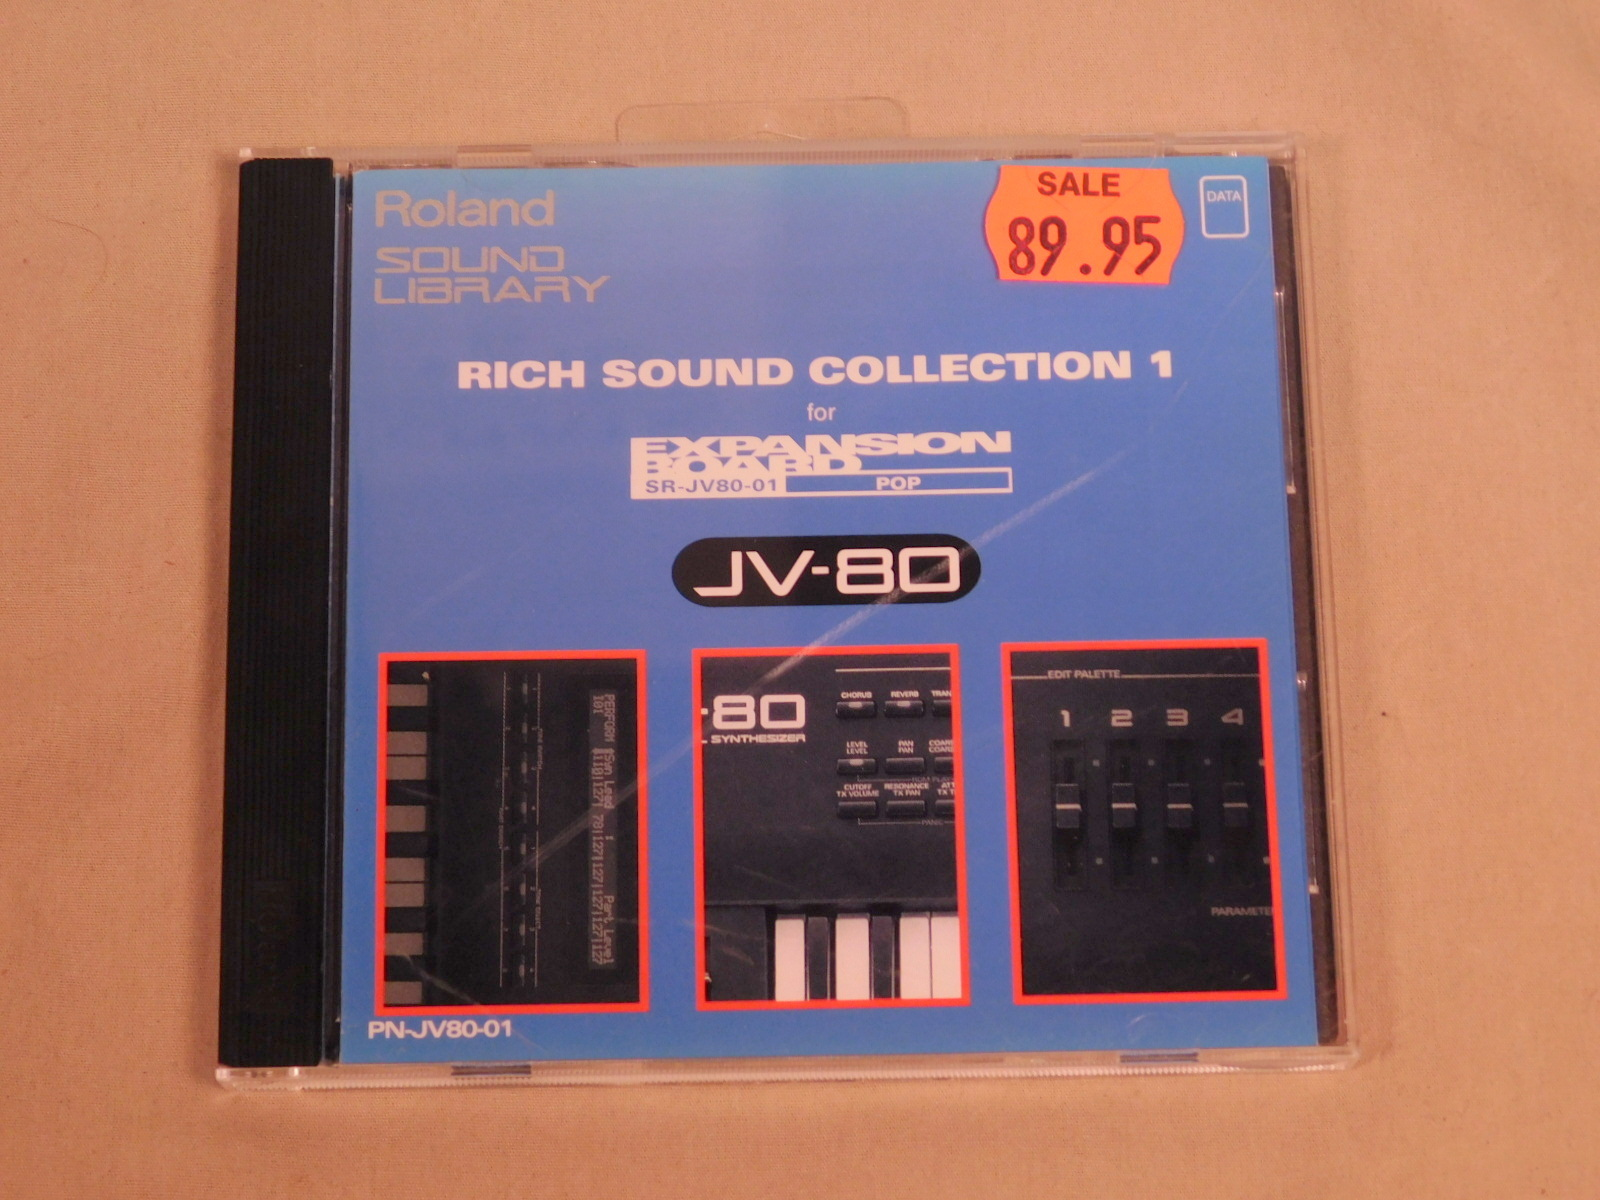 ROLAND SR-JV80-01 RICH SOUND COLLECTION 1 ONE EXPANSION BOARD FOR JV-80